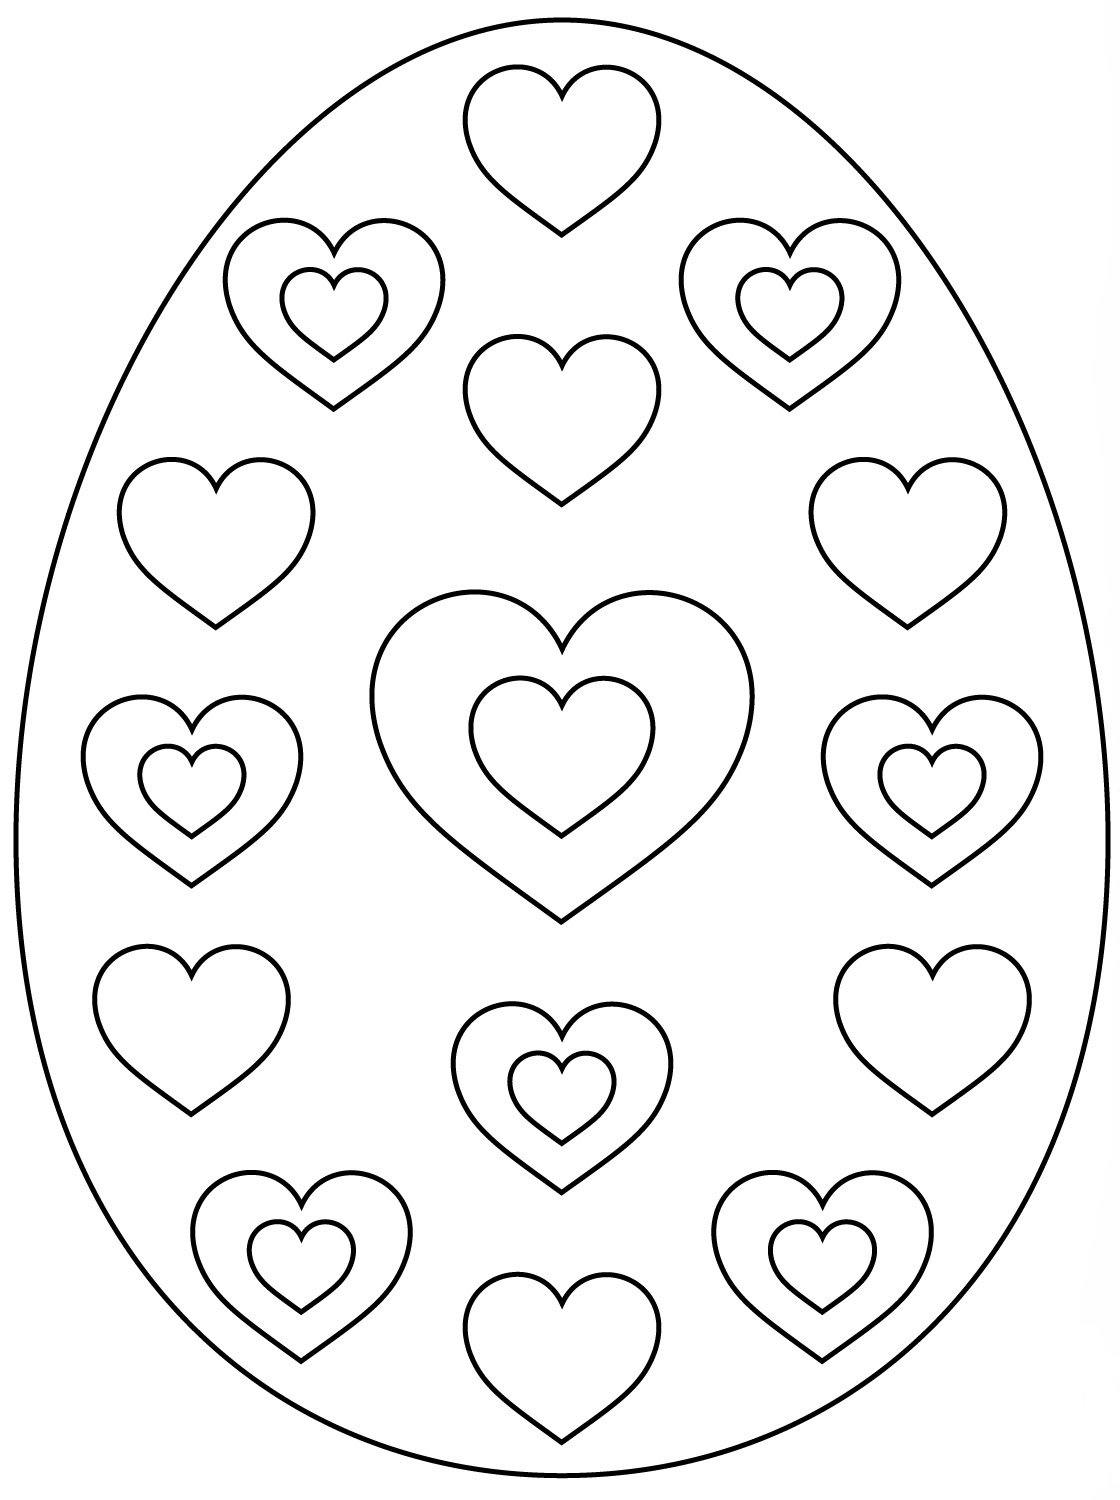 abstract easter egg coloring pages - photo#19